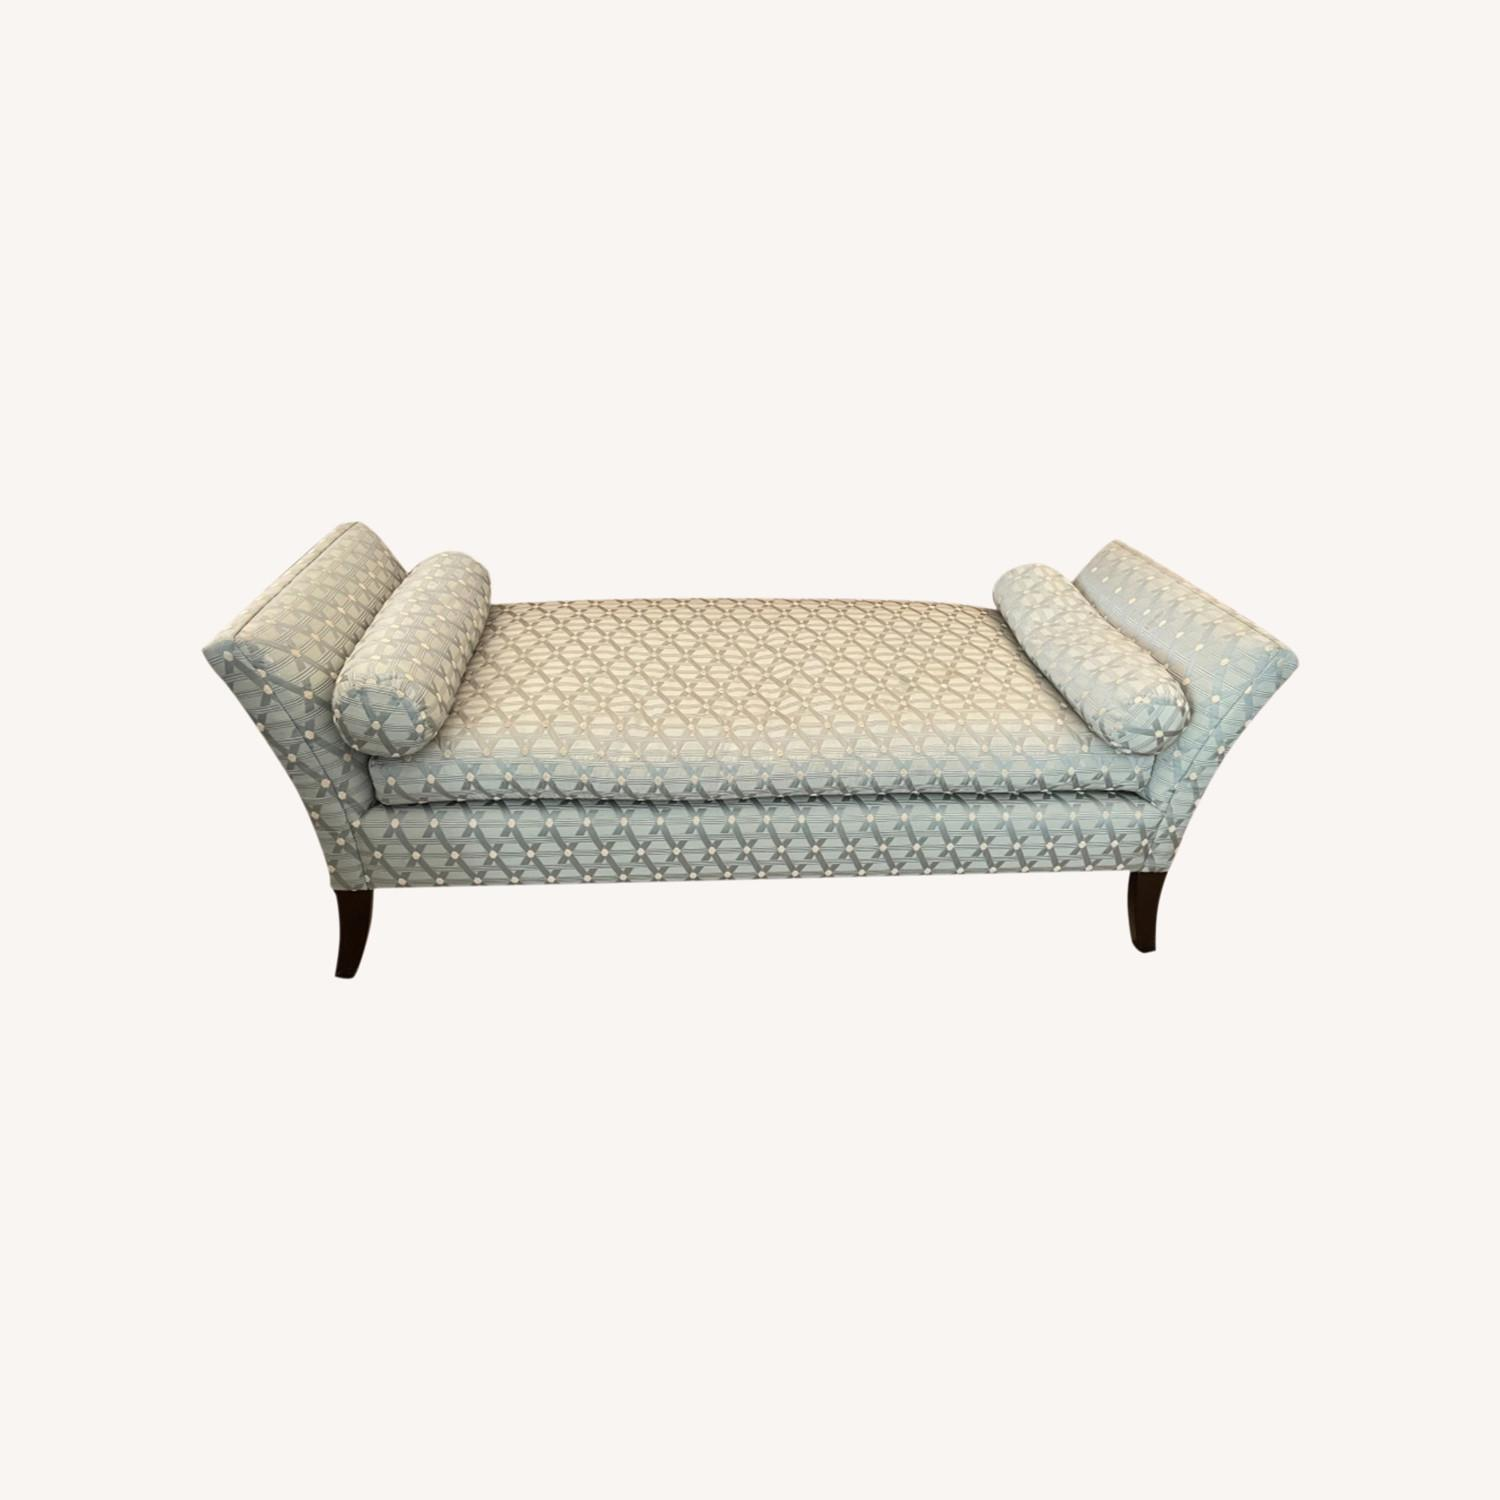 Seafoam Patterned Daybed - image-0